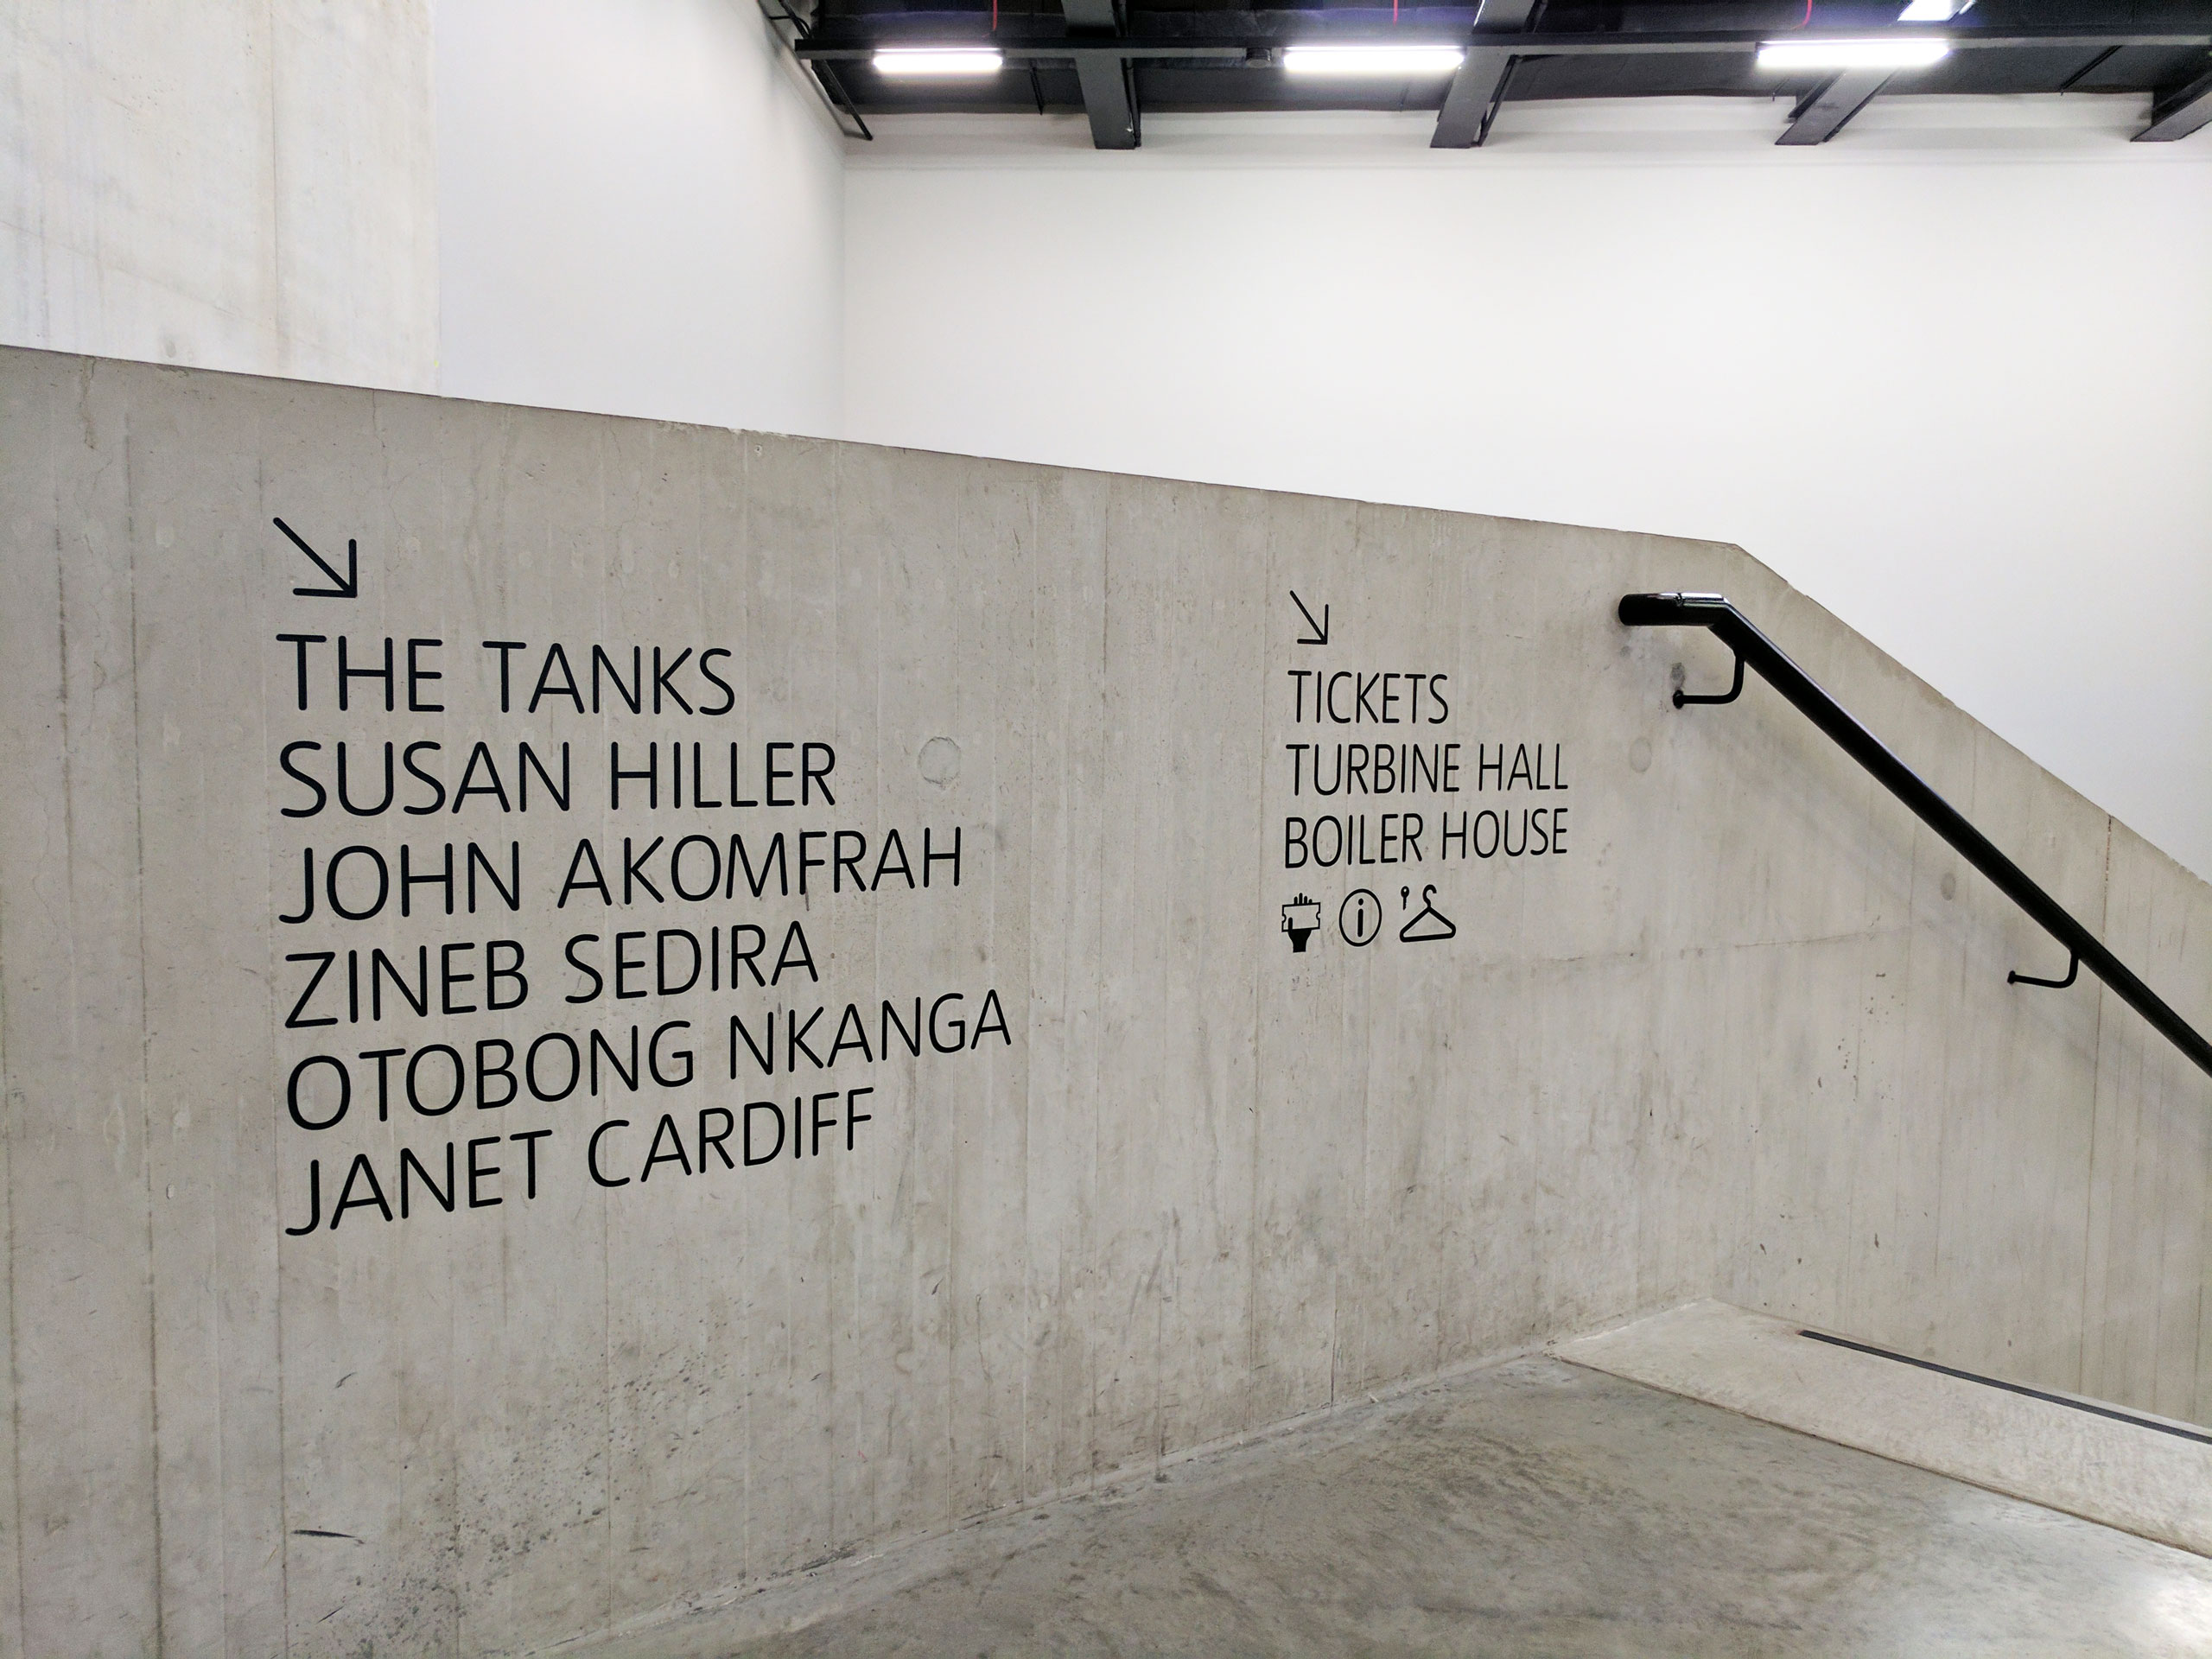 concrete stairway with wayfinding.